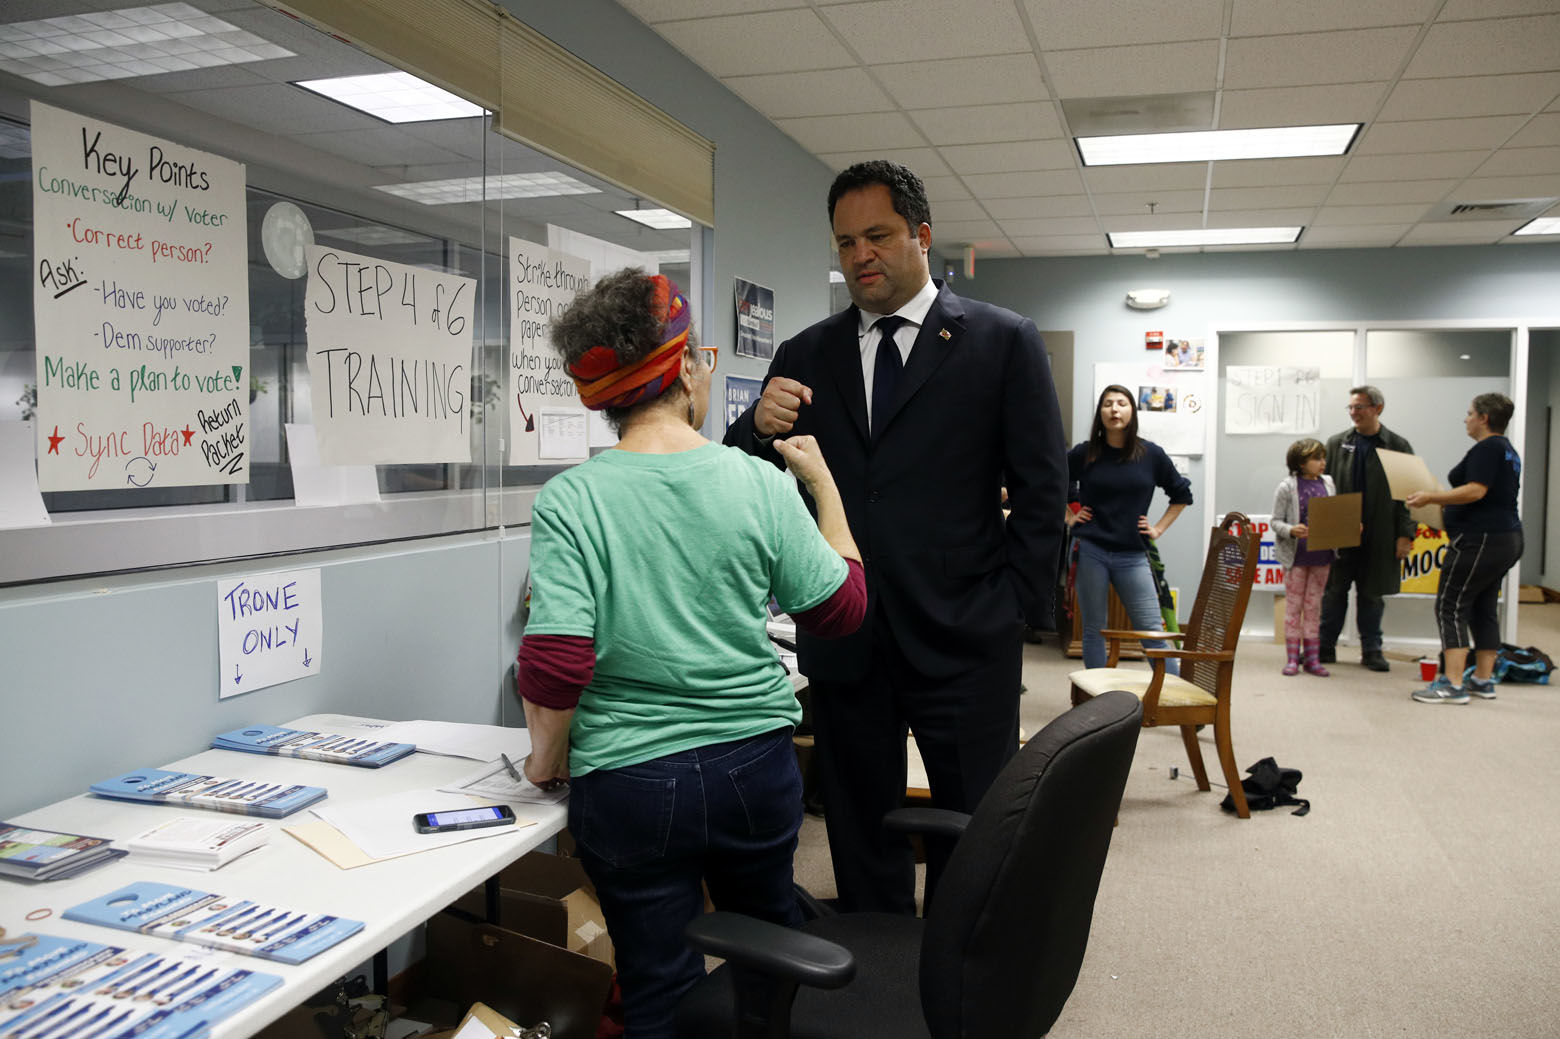 Maryland Democratic gubernatorial candidate Ben Jealous, center right, fist-bumps volunteer Evie Frankl during a visit to a Montgomery County coordinated campaign office, Monday, Nov. 5, 2018, in Silver Spring, Md. Jealous is running against incumbent Gov. Larry Hogan. (AP Photo/Patrick Semansky)